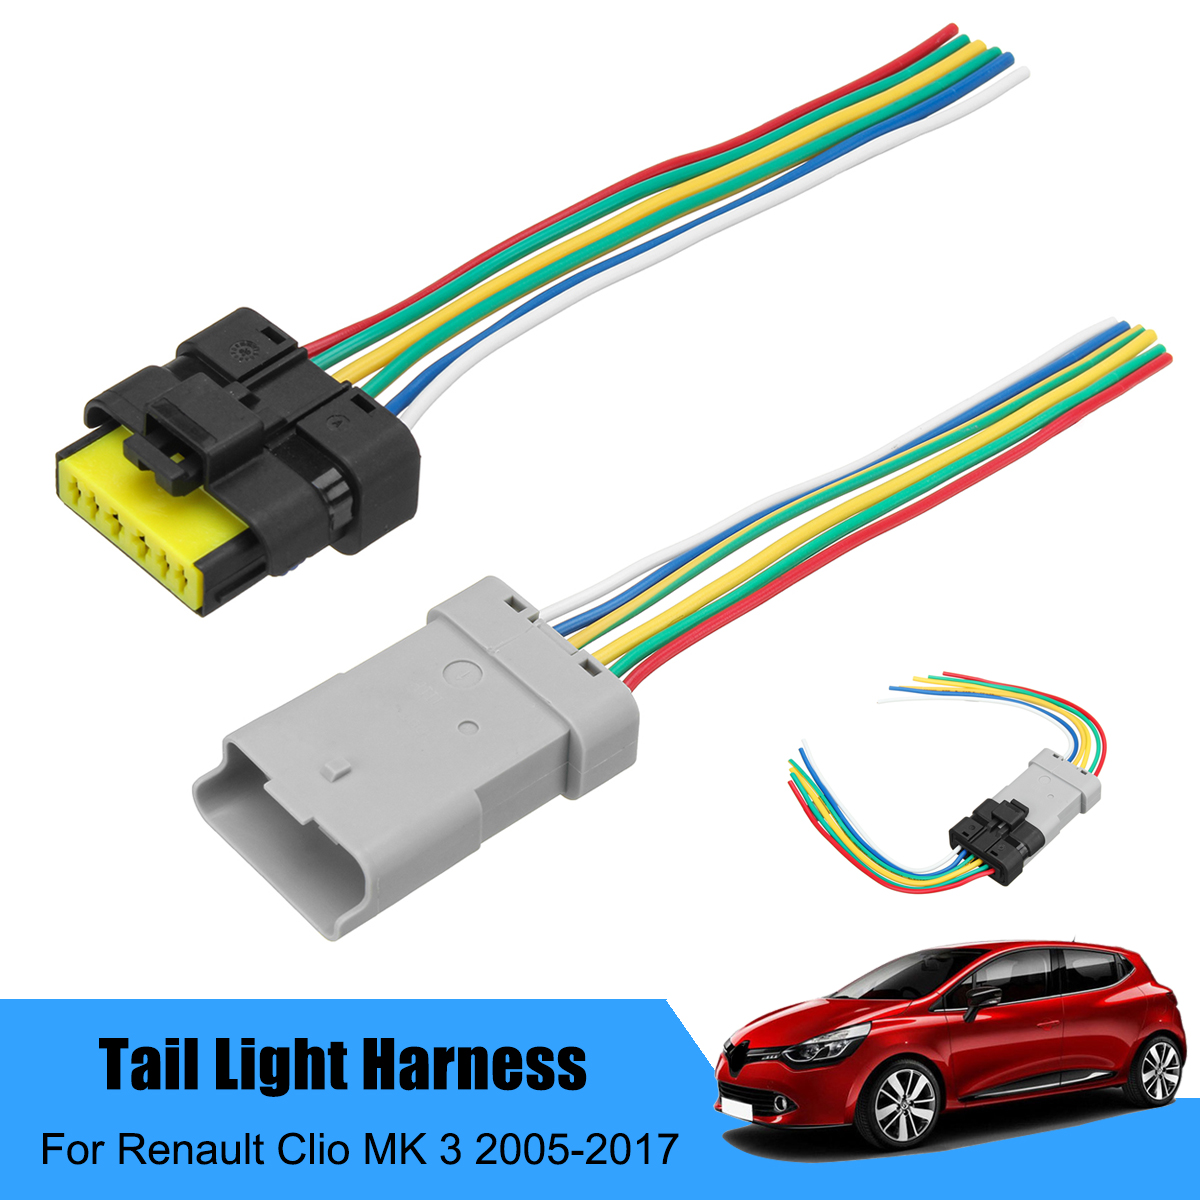 hight resolution of car rear tail light loom harness pigtail adapter for renault clio mk 3 2005 2017